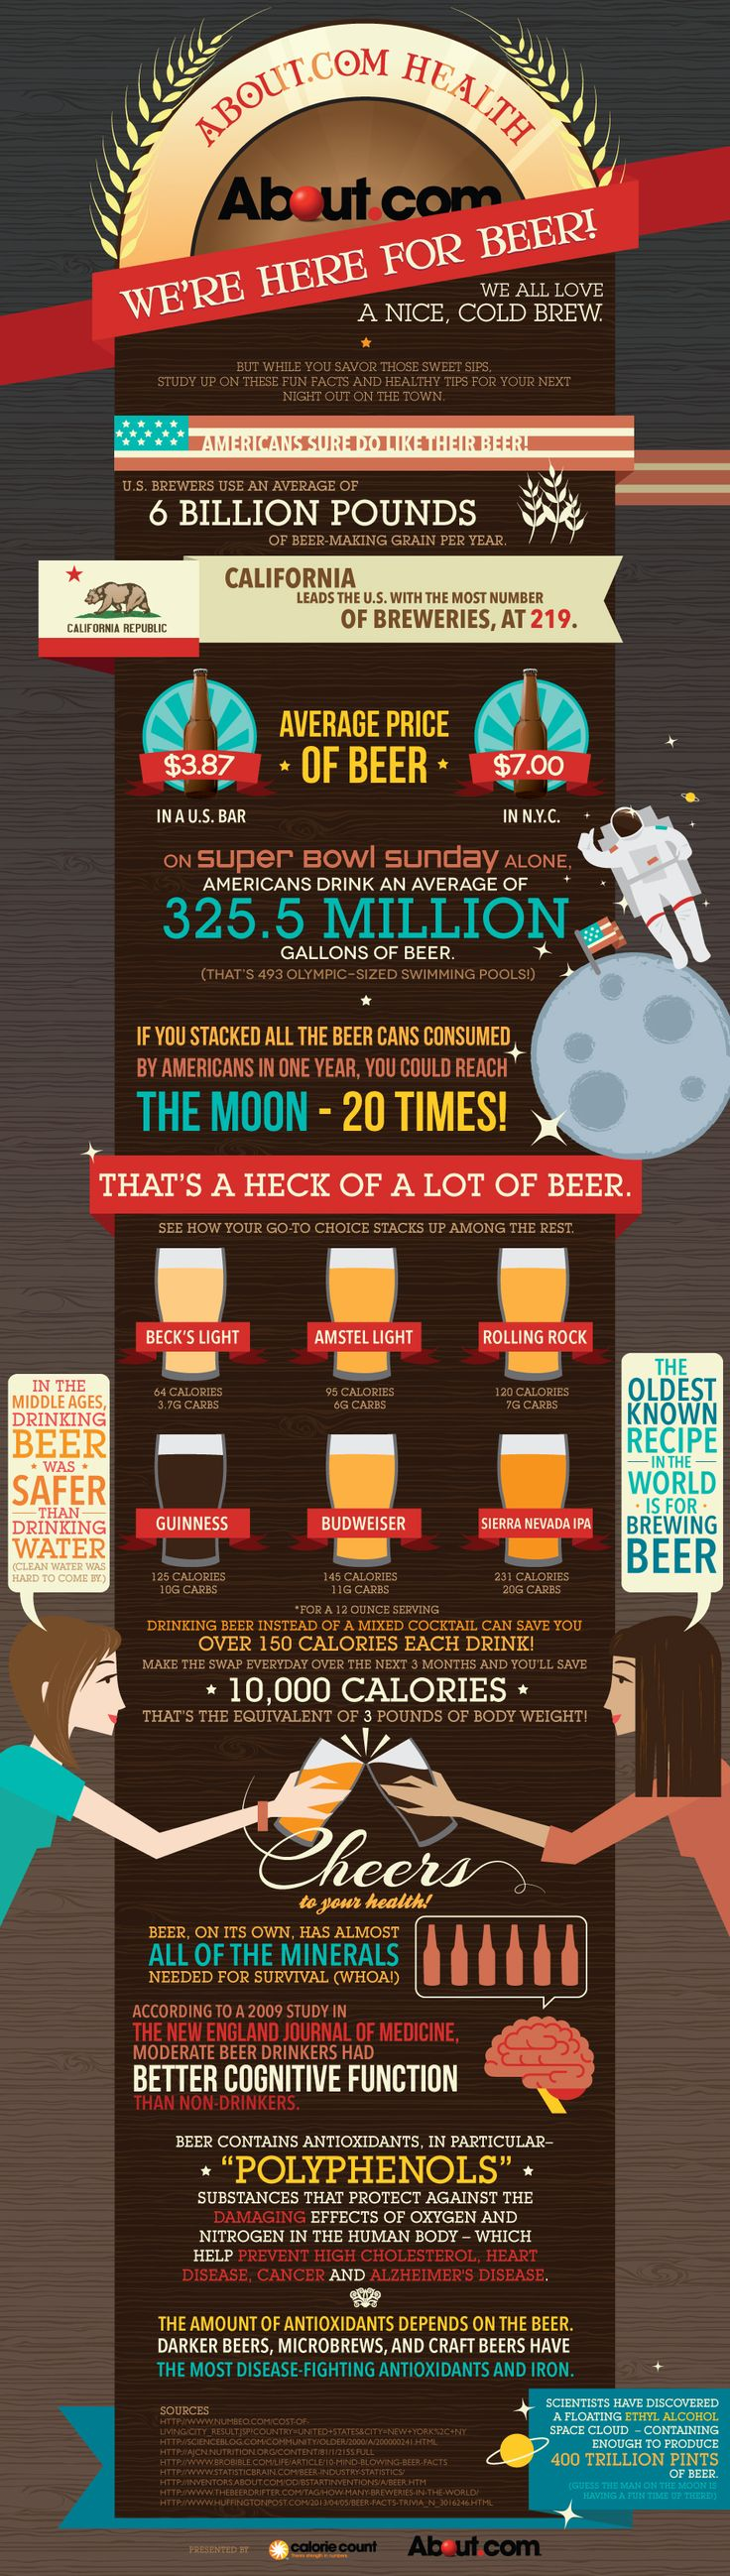 All About Beer from About.com Health http://0.tqn.com/f/ga/1/about-infographic-beer03.jpg